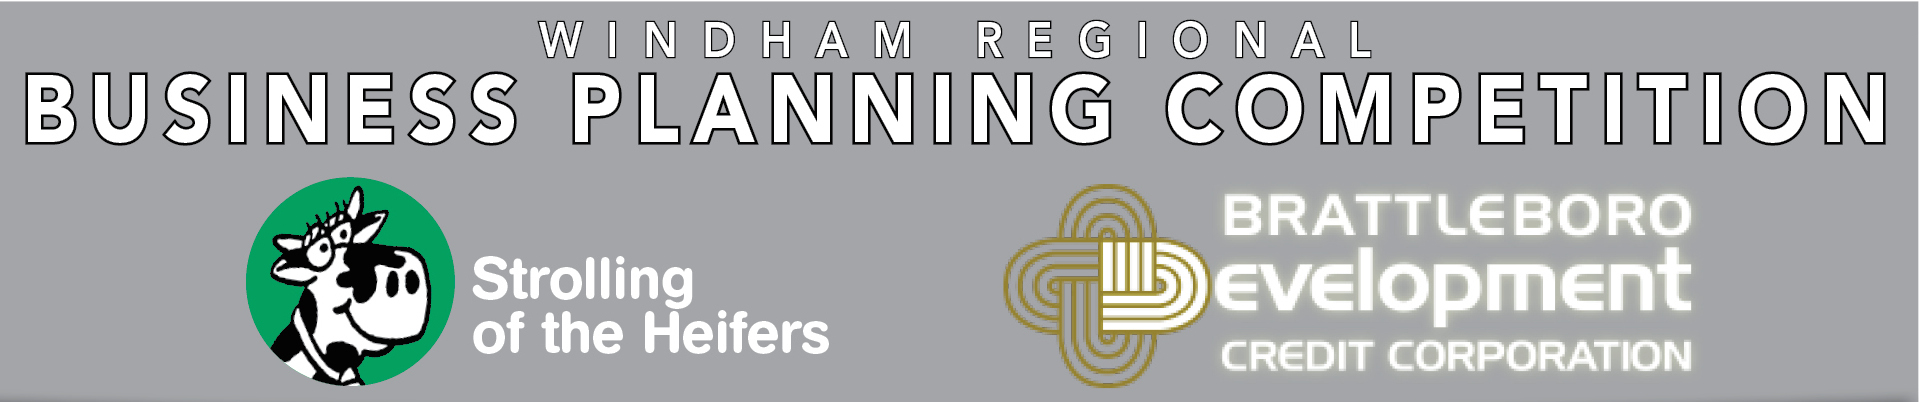 Business Planning Competition Winners